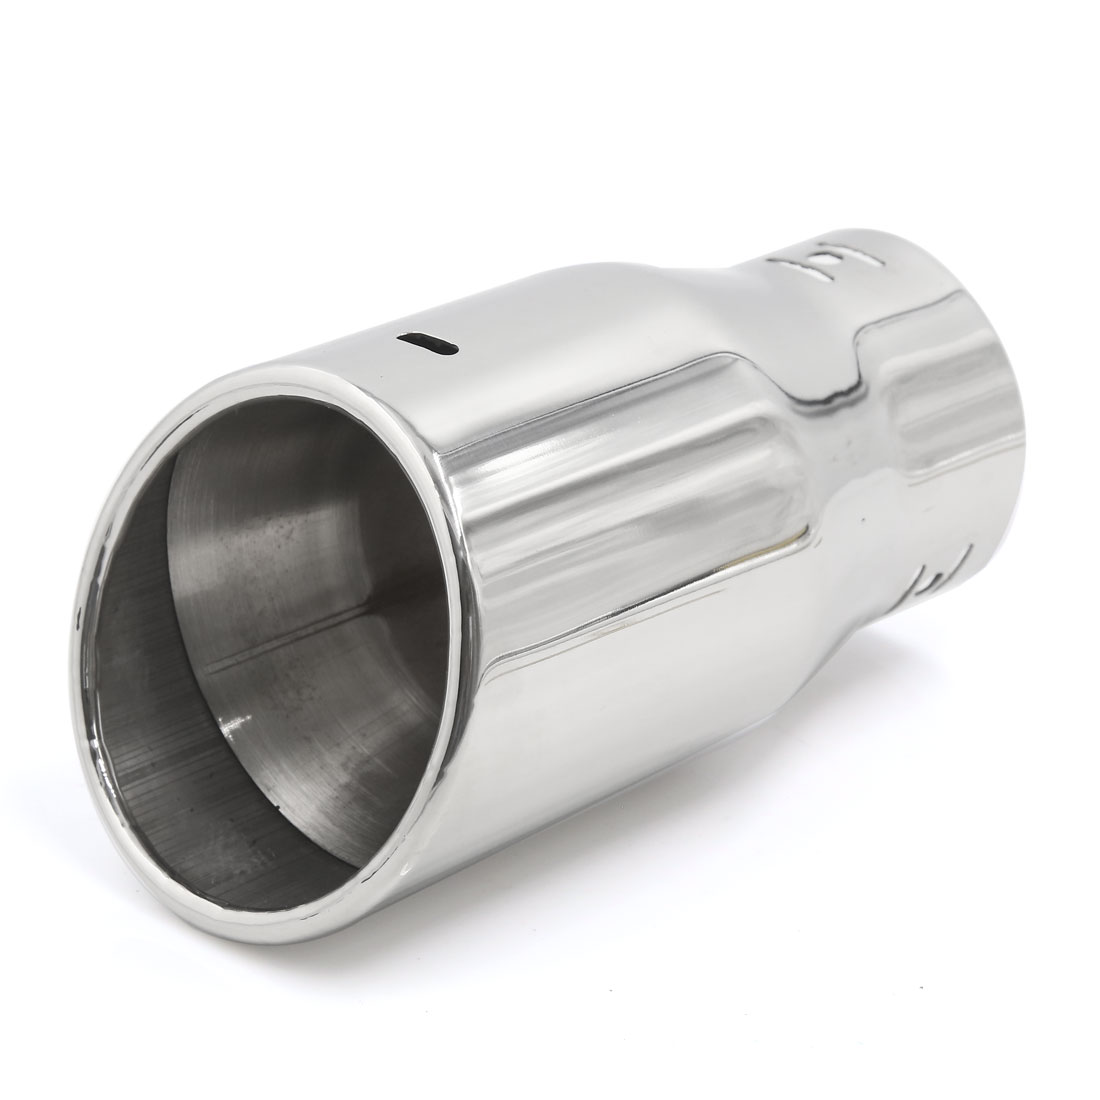 Silver Tone Stainless Steel Straight Round Tip Exhaust Muffler Tail Pipe for Car